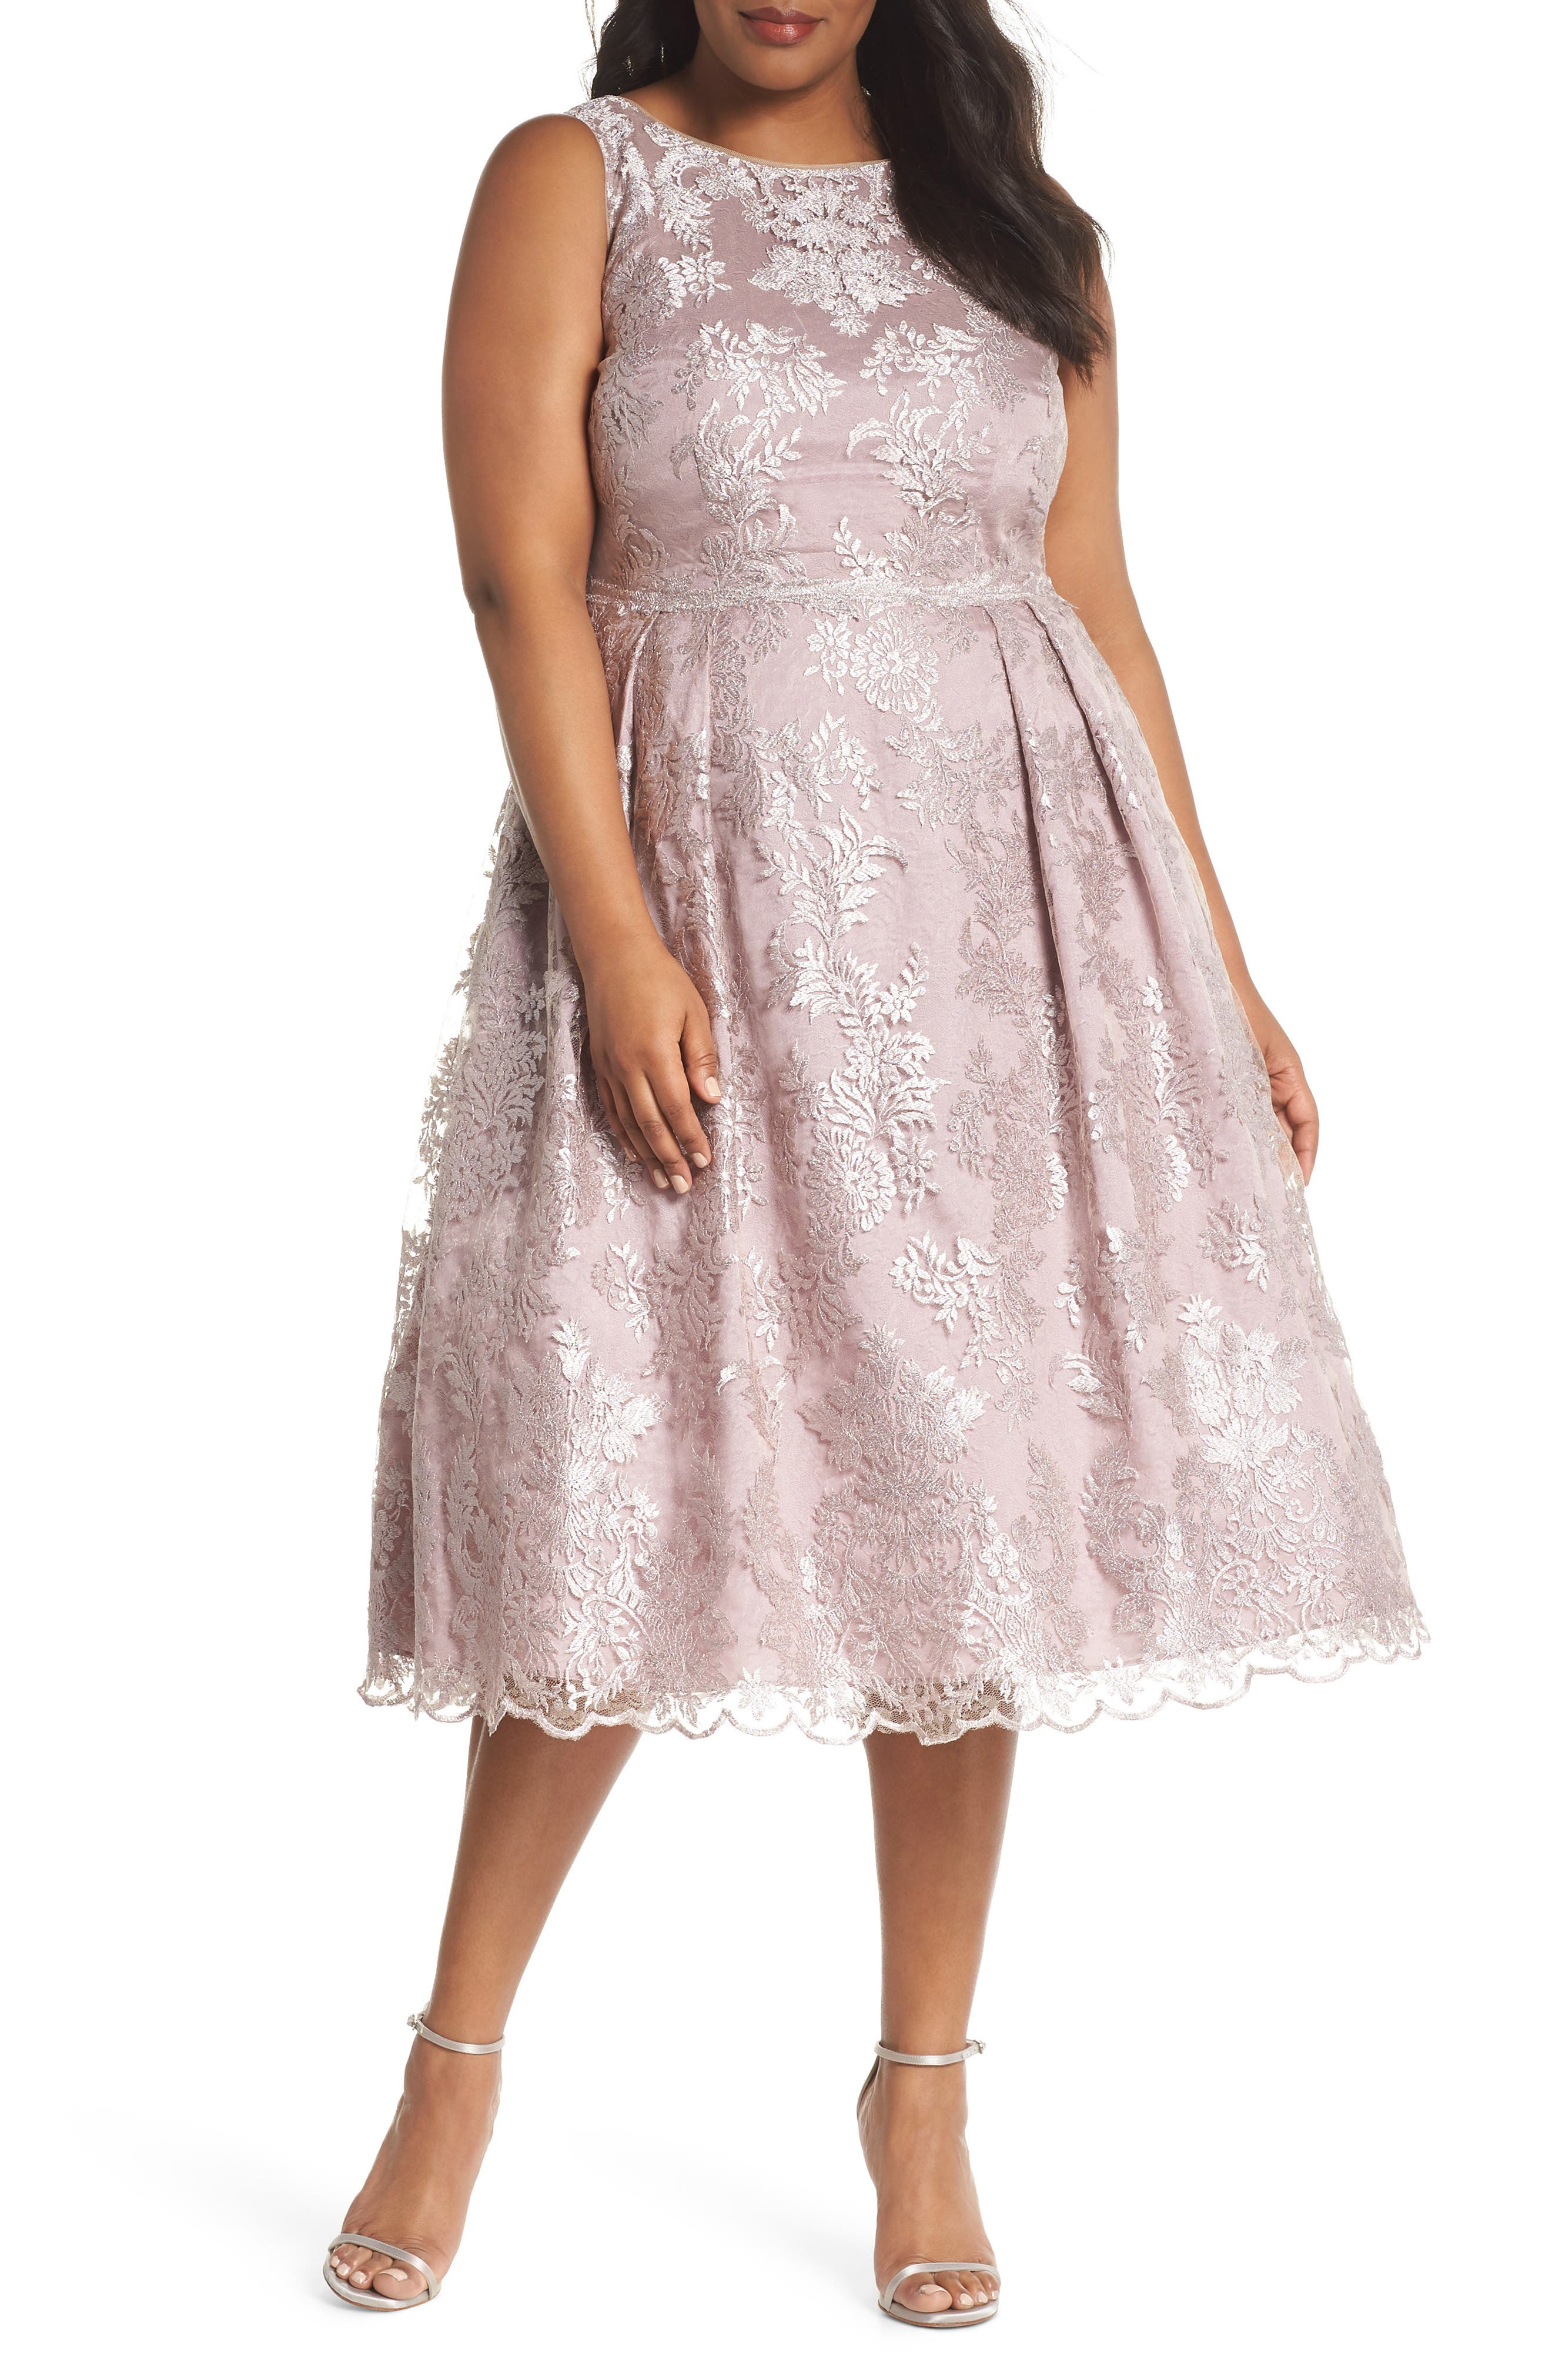 ADRIANNA PAPELL Metallic Embroidered Tea Length Dress, Main, color, 670